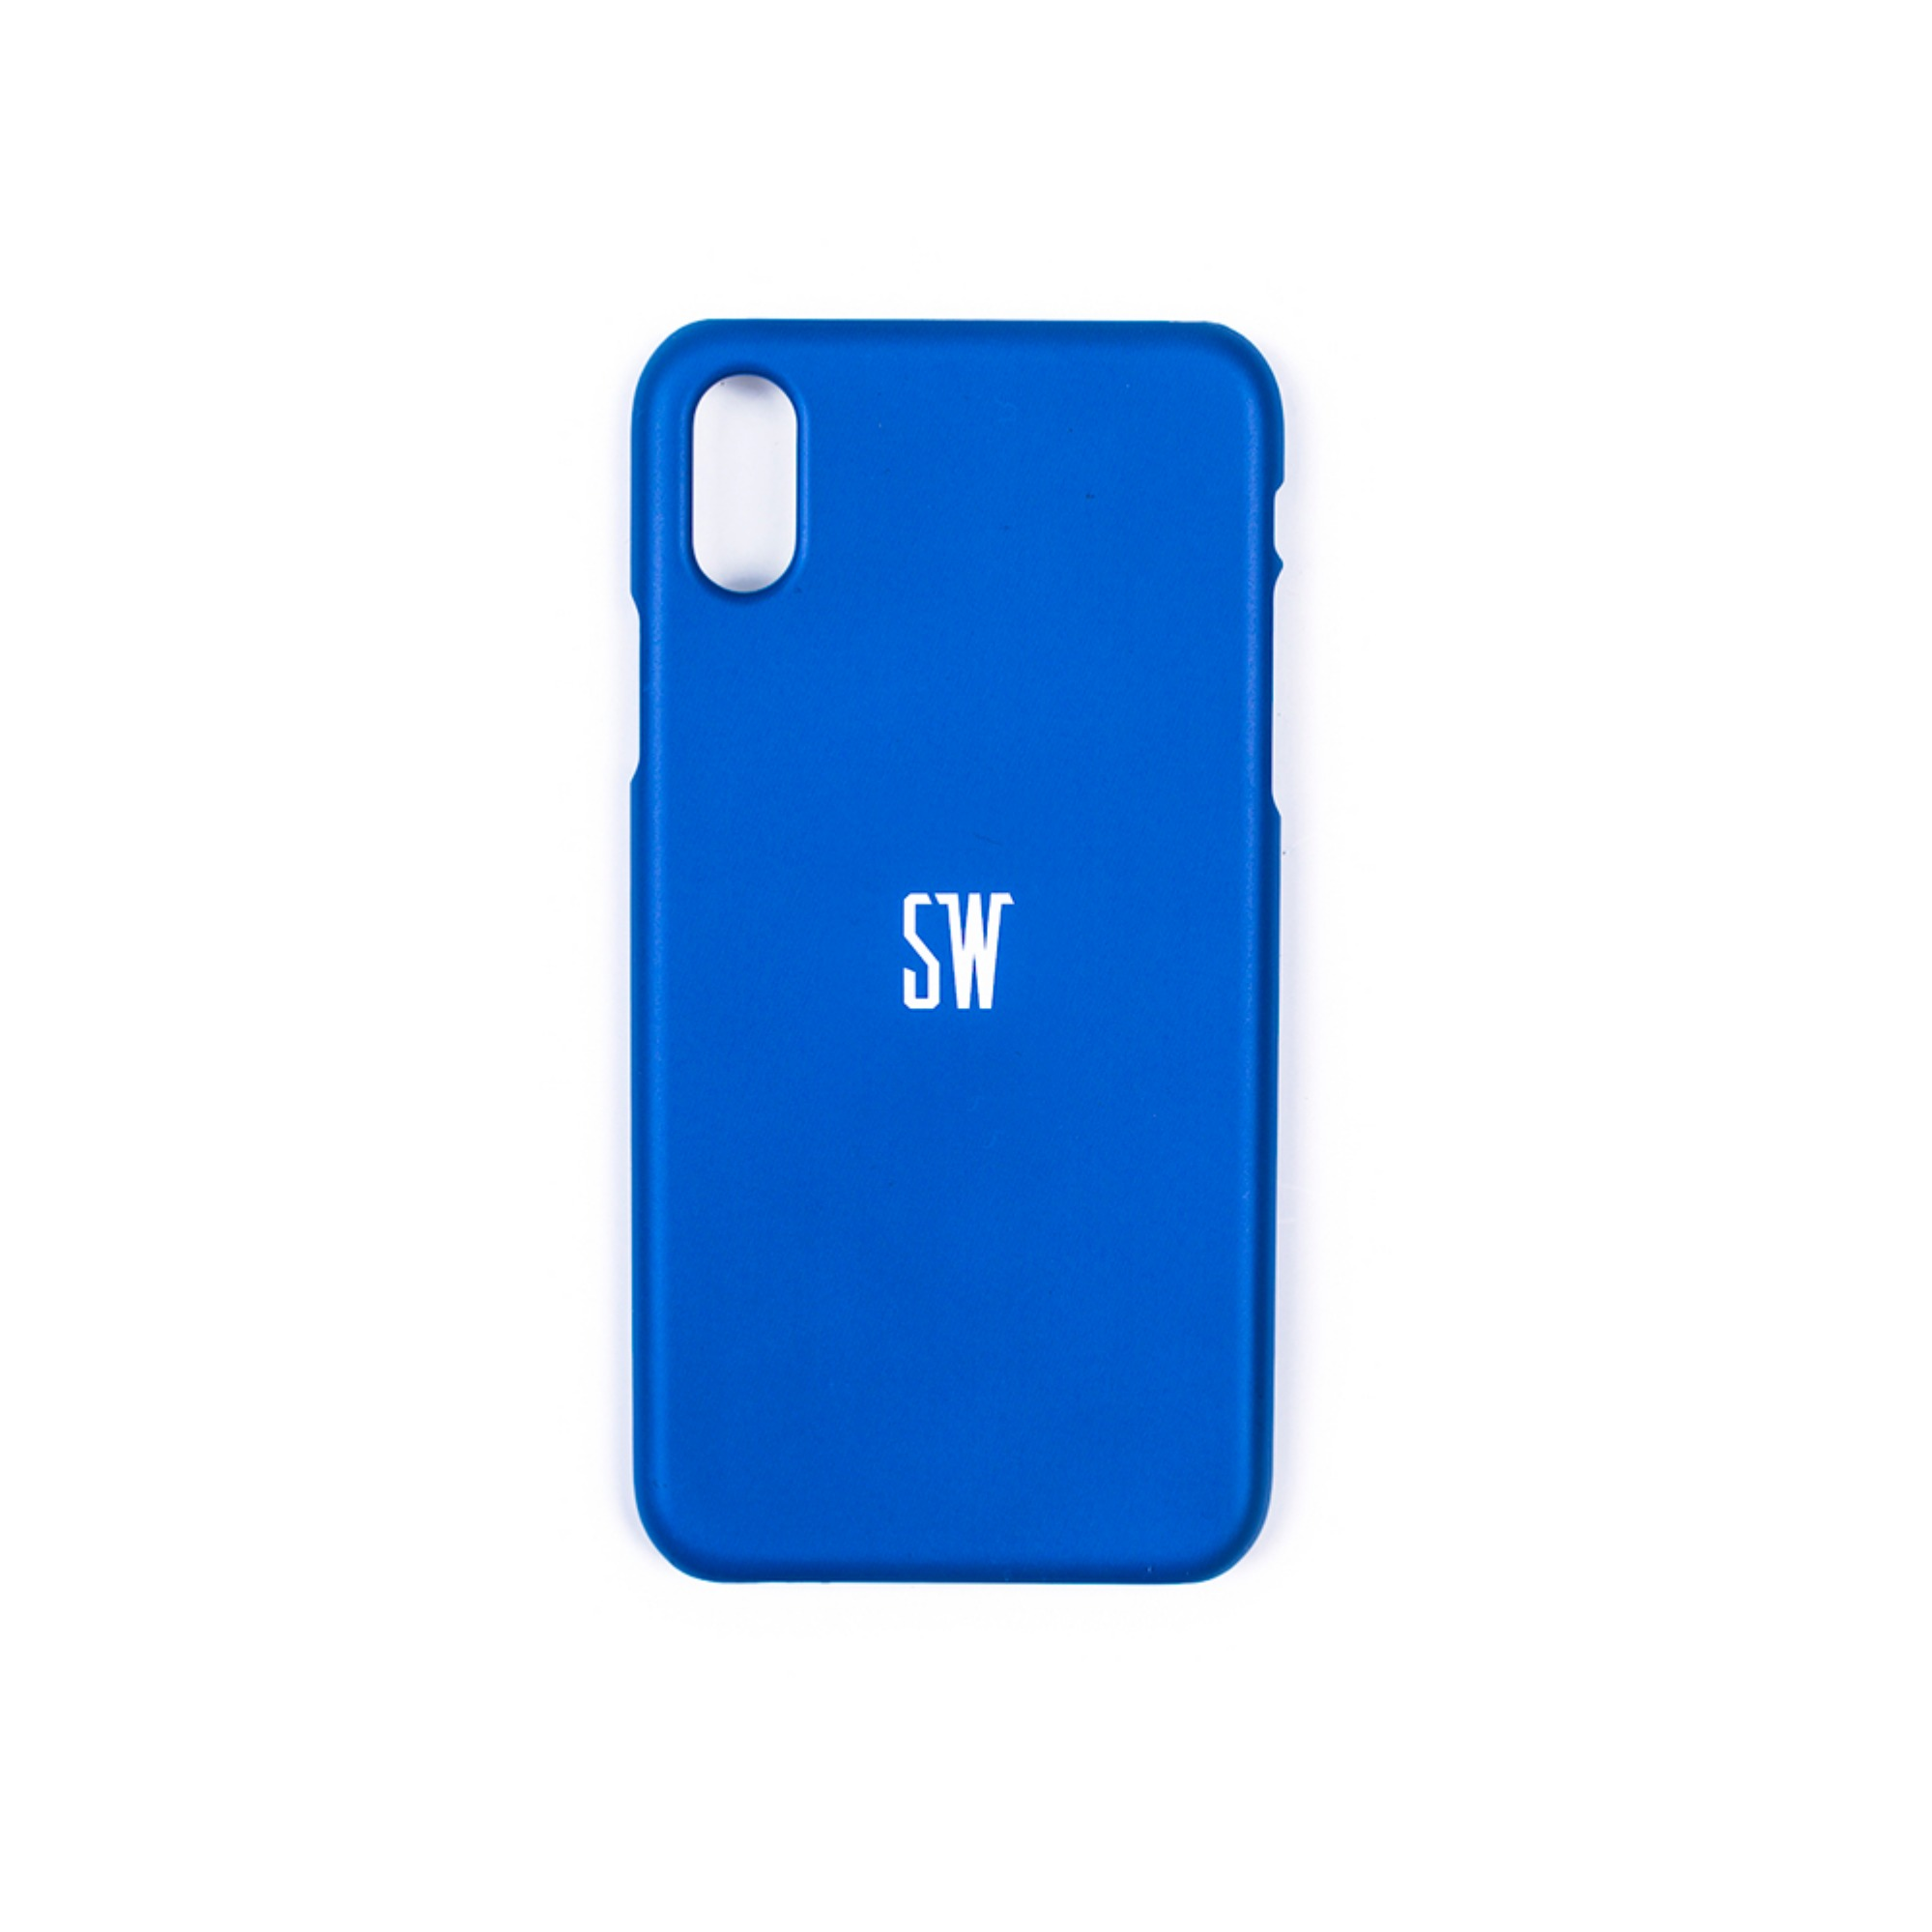 'SEUNGWOOLEE' SMARTPHONE CASE - 'SW' LOGO (BLUE)